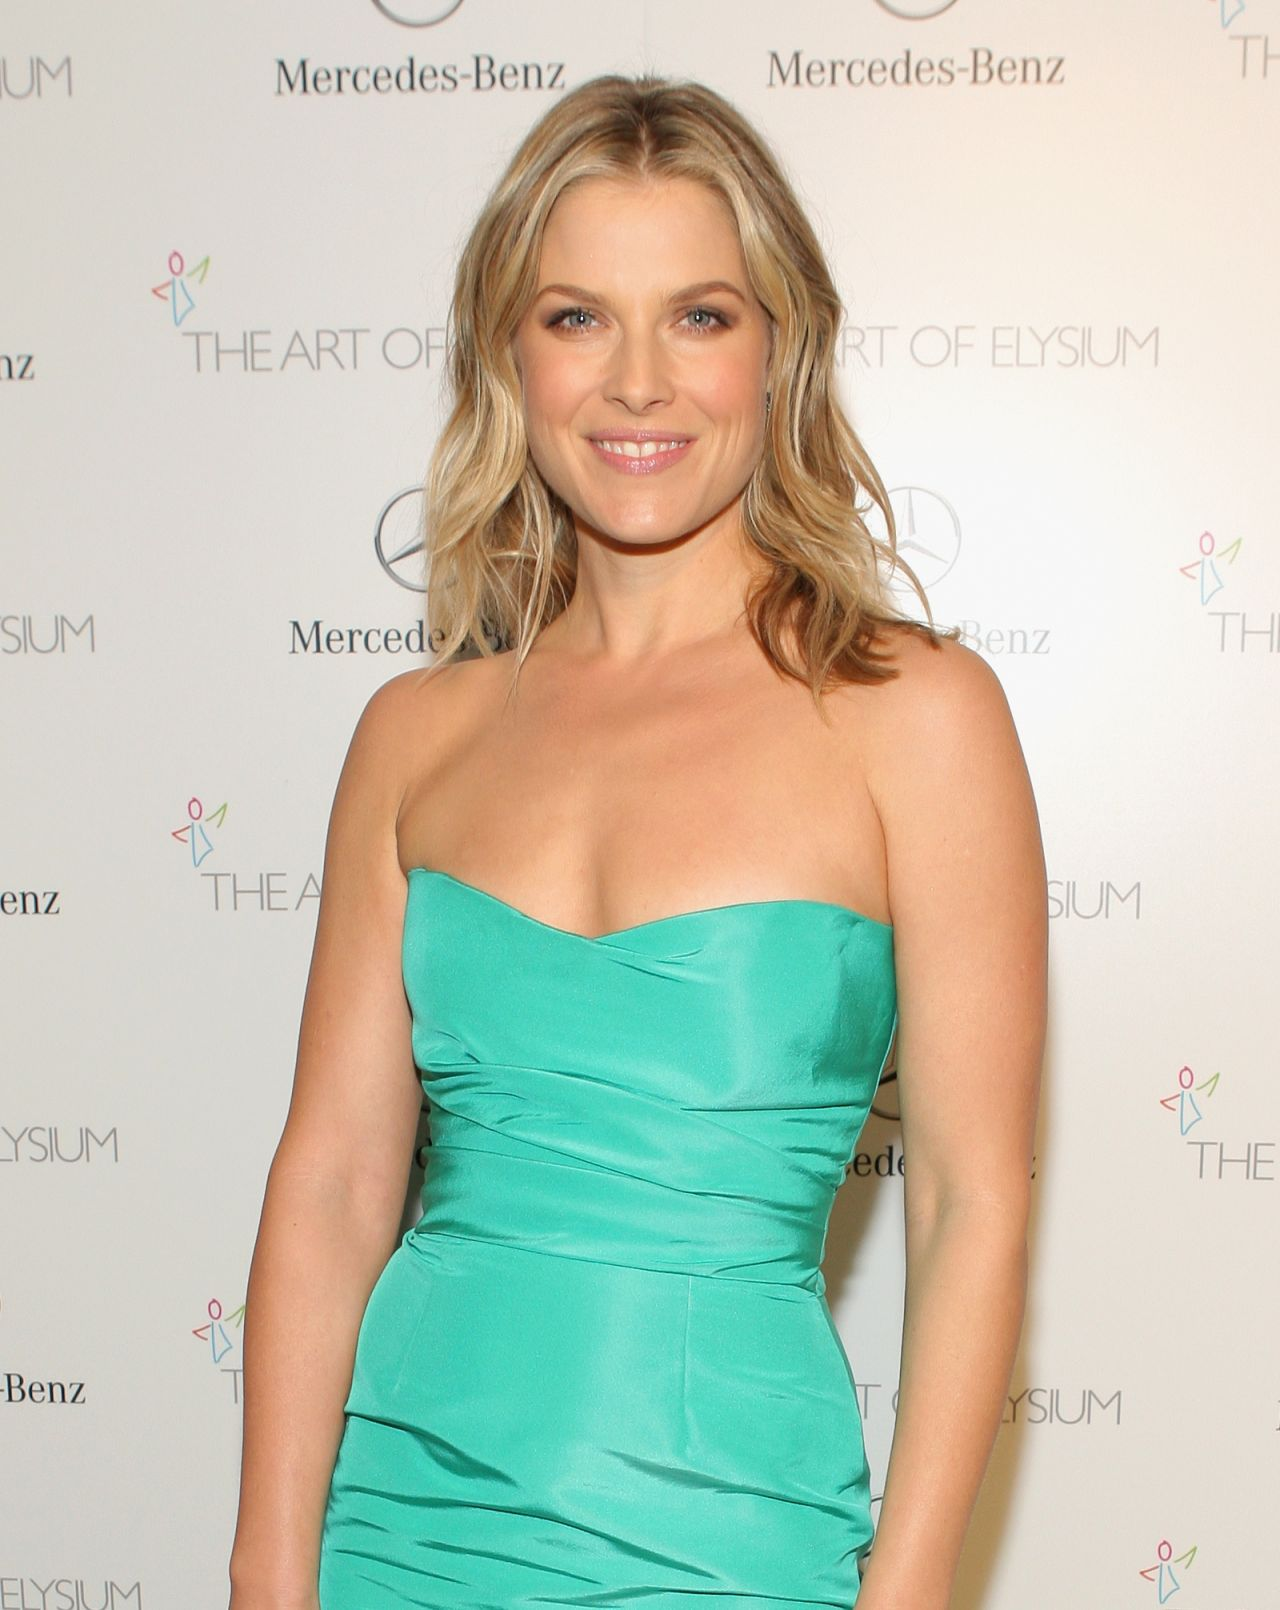 Ali Larter Wearing Monique Lhuillier at The Art of Elysium HEAVEN Gala in Los Angeles